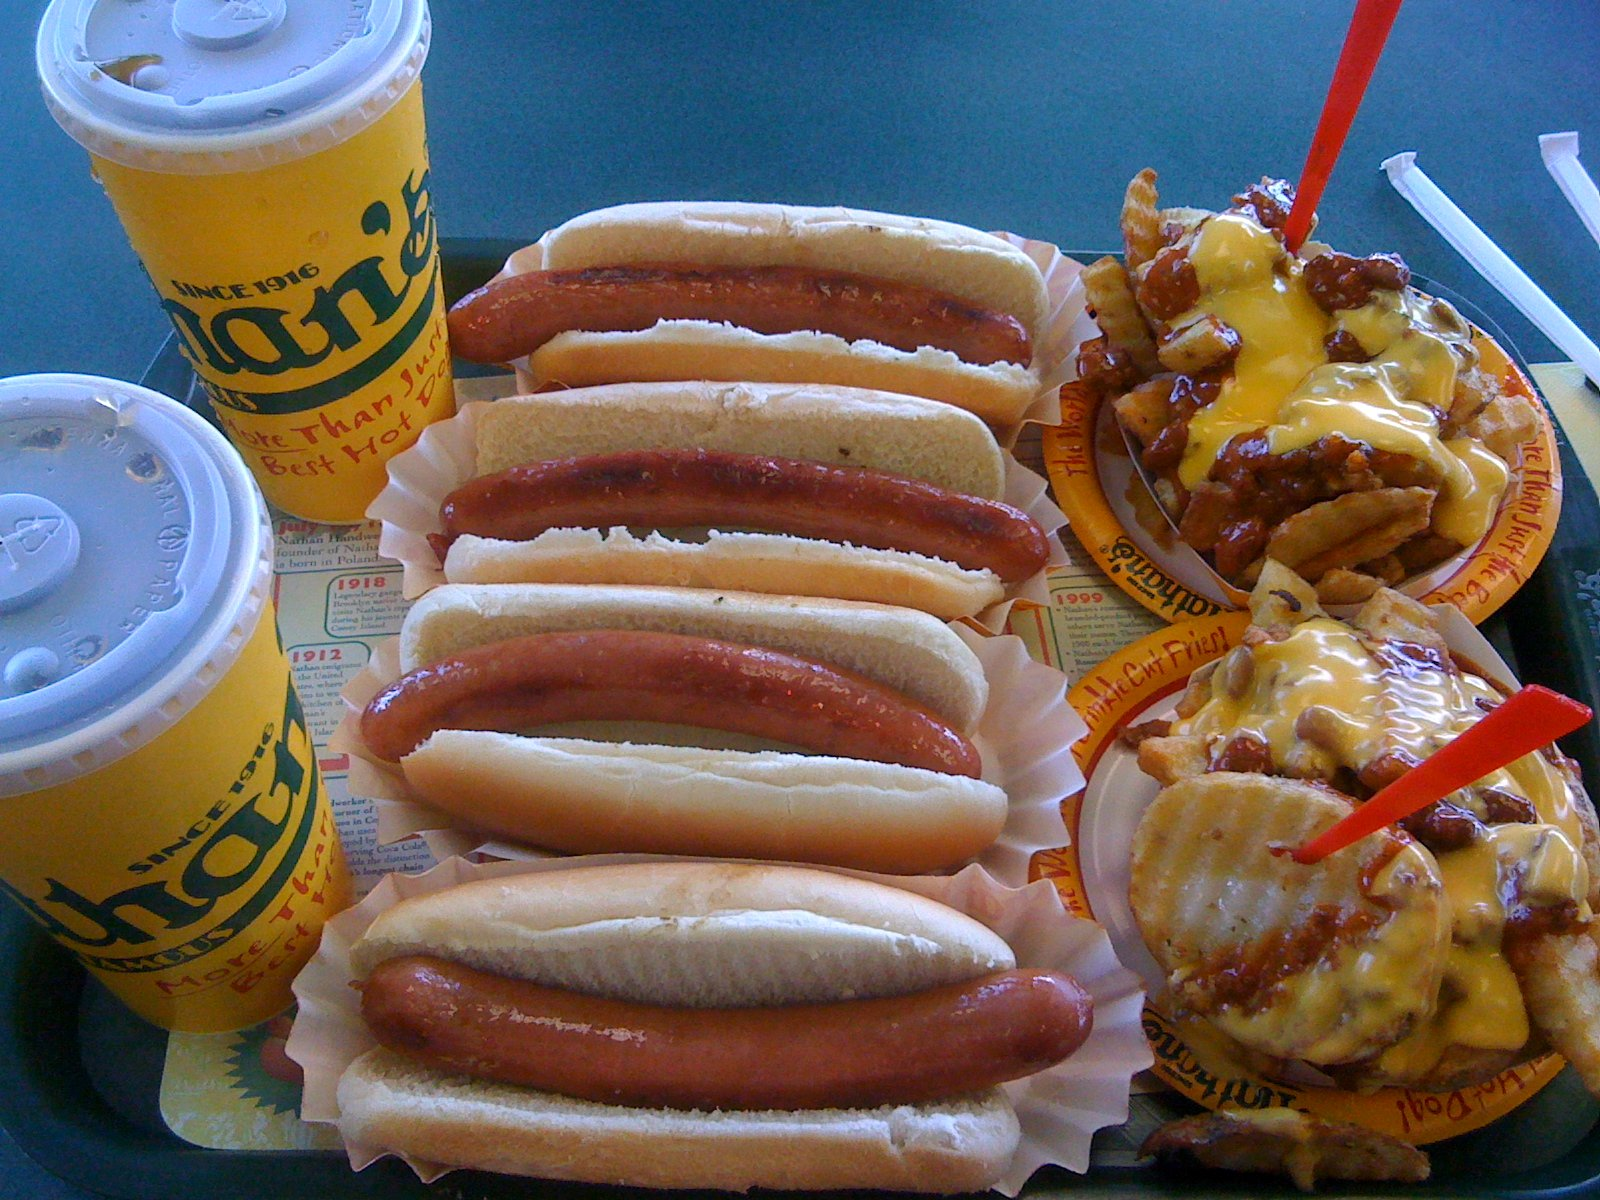 Nathan's Famous hot dogs! (Image: joeymanley)